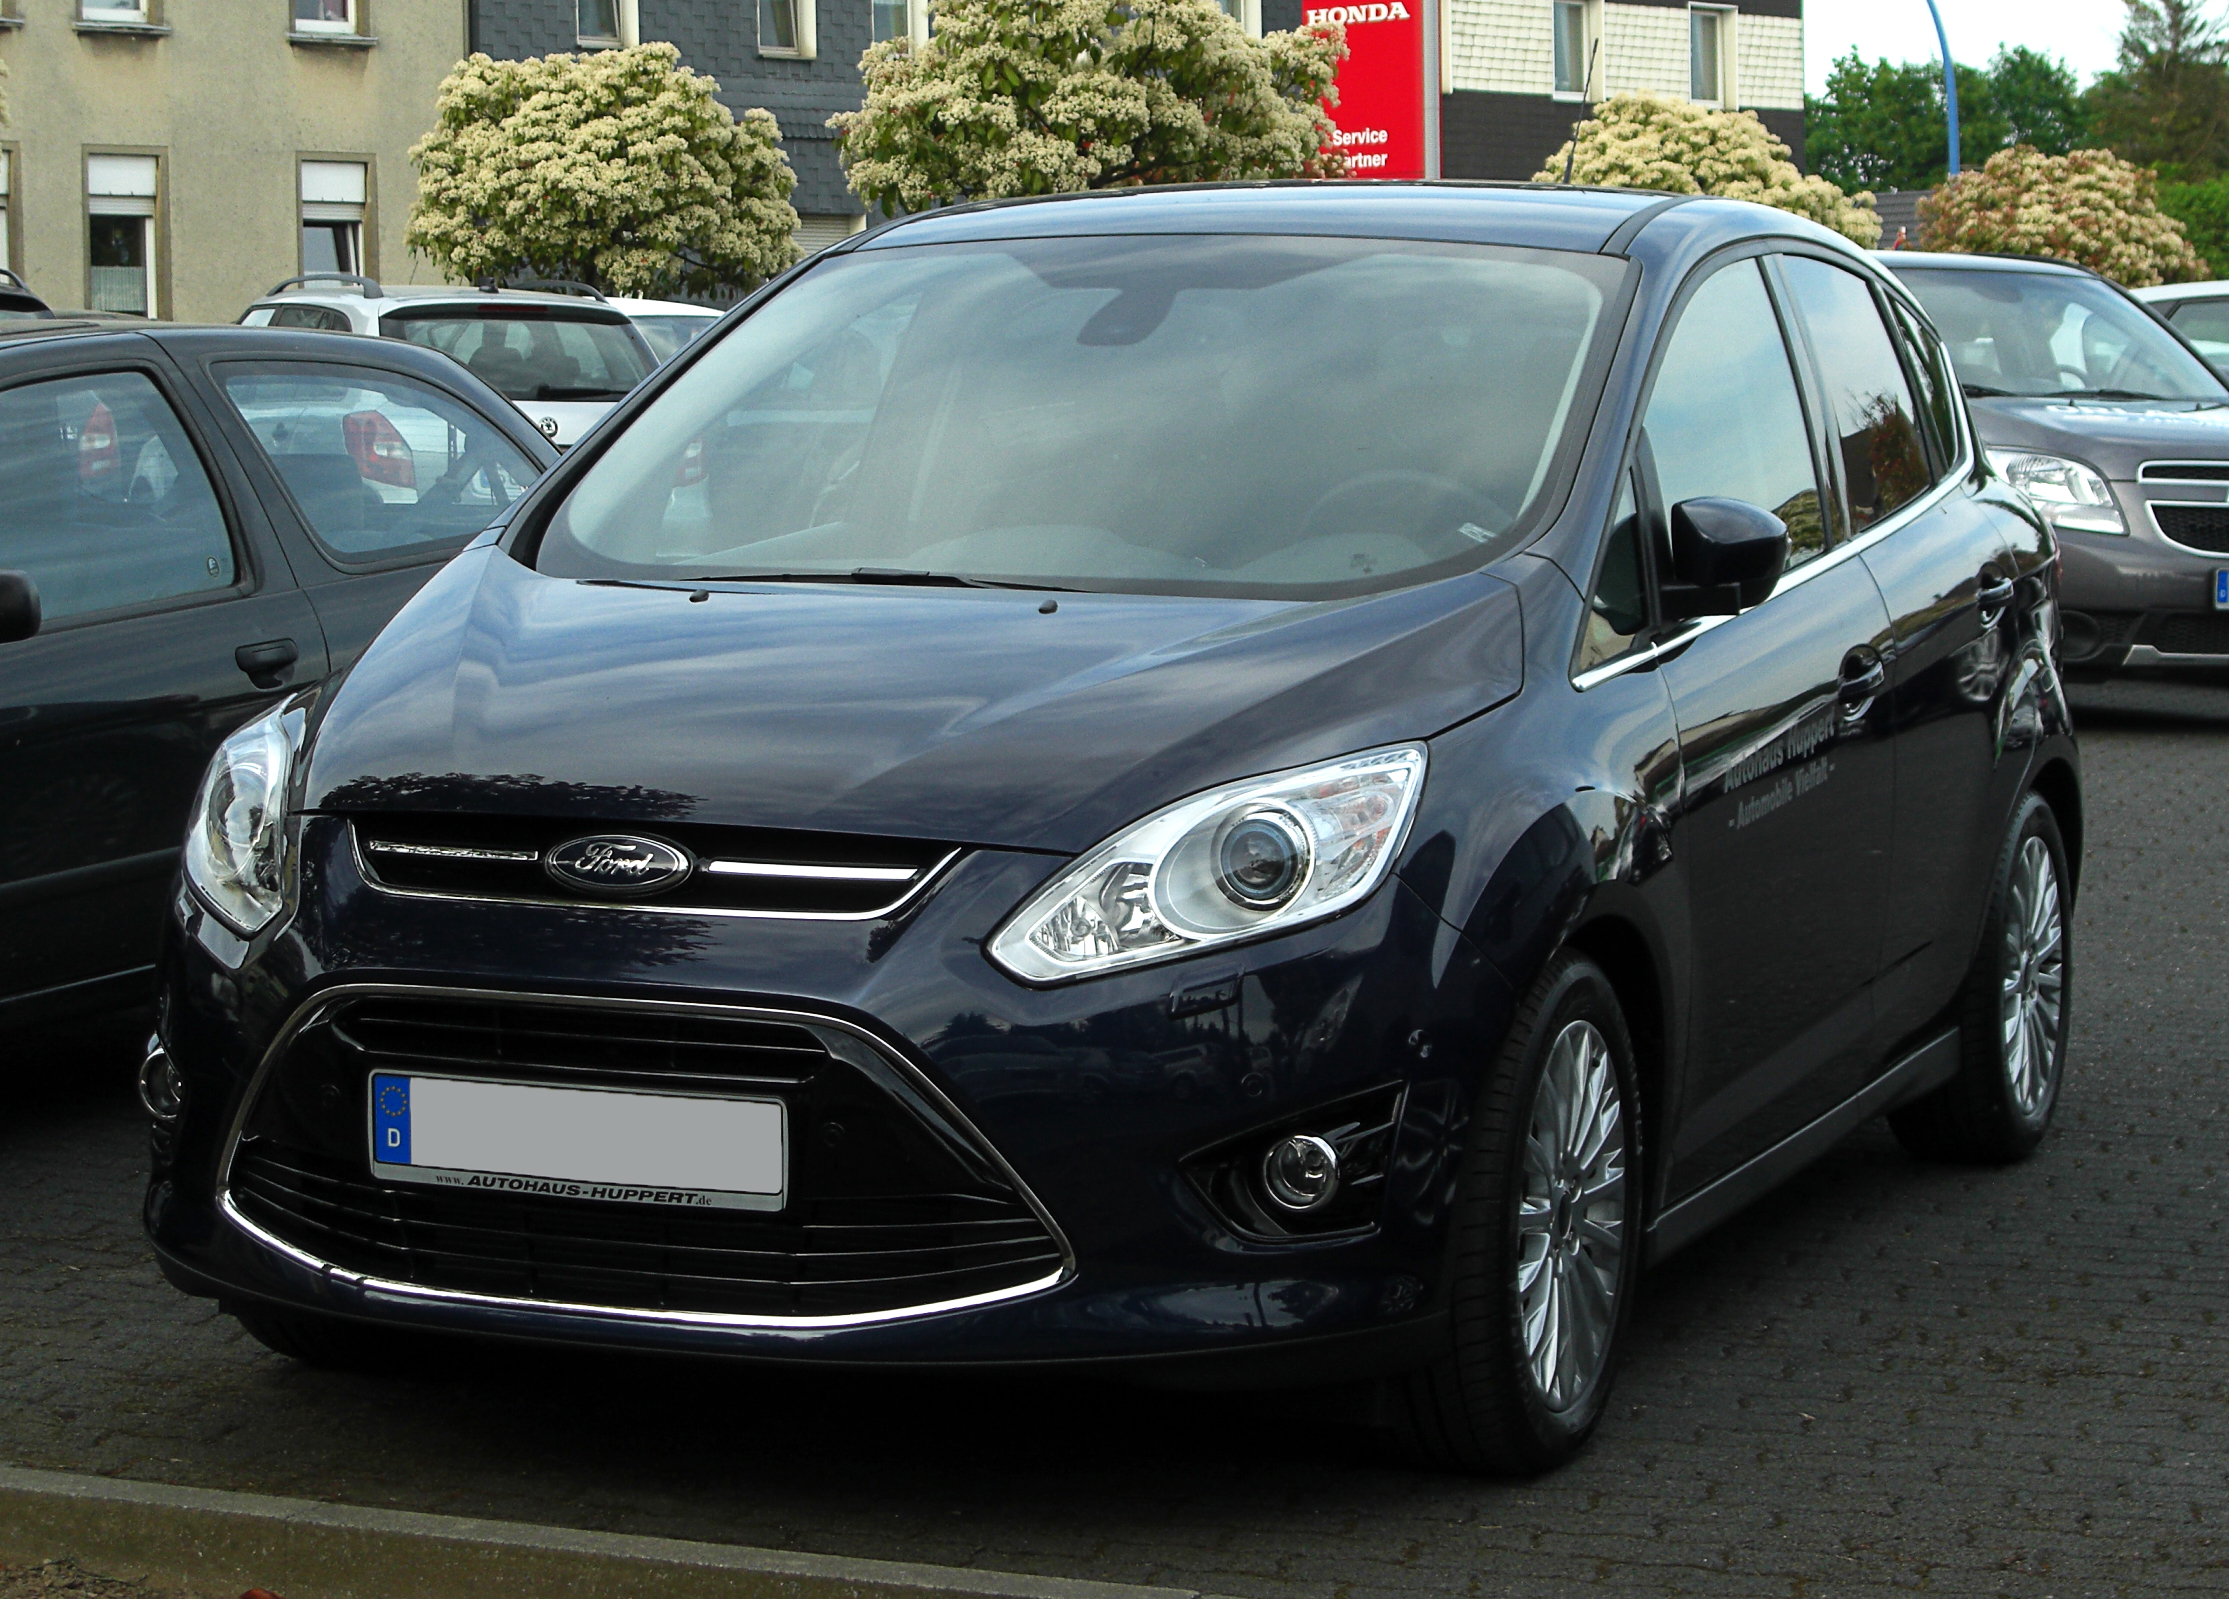 ford c-max 1.6 ecoboost #5